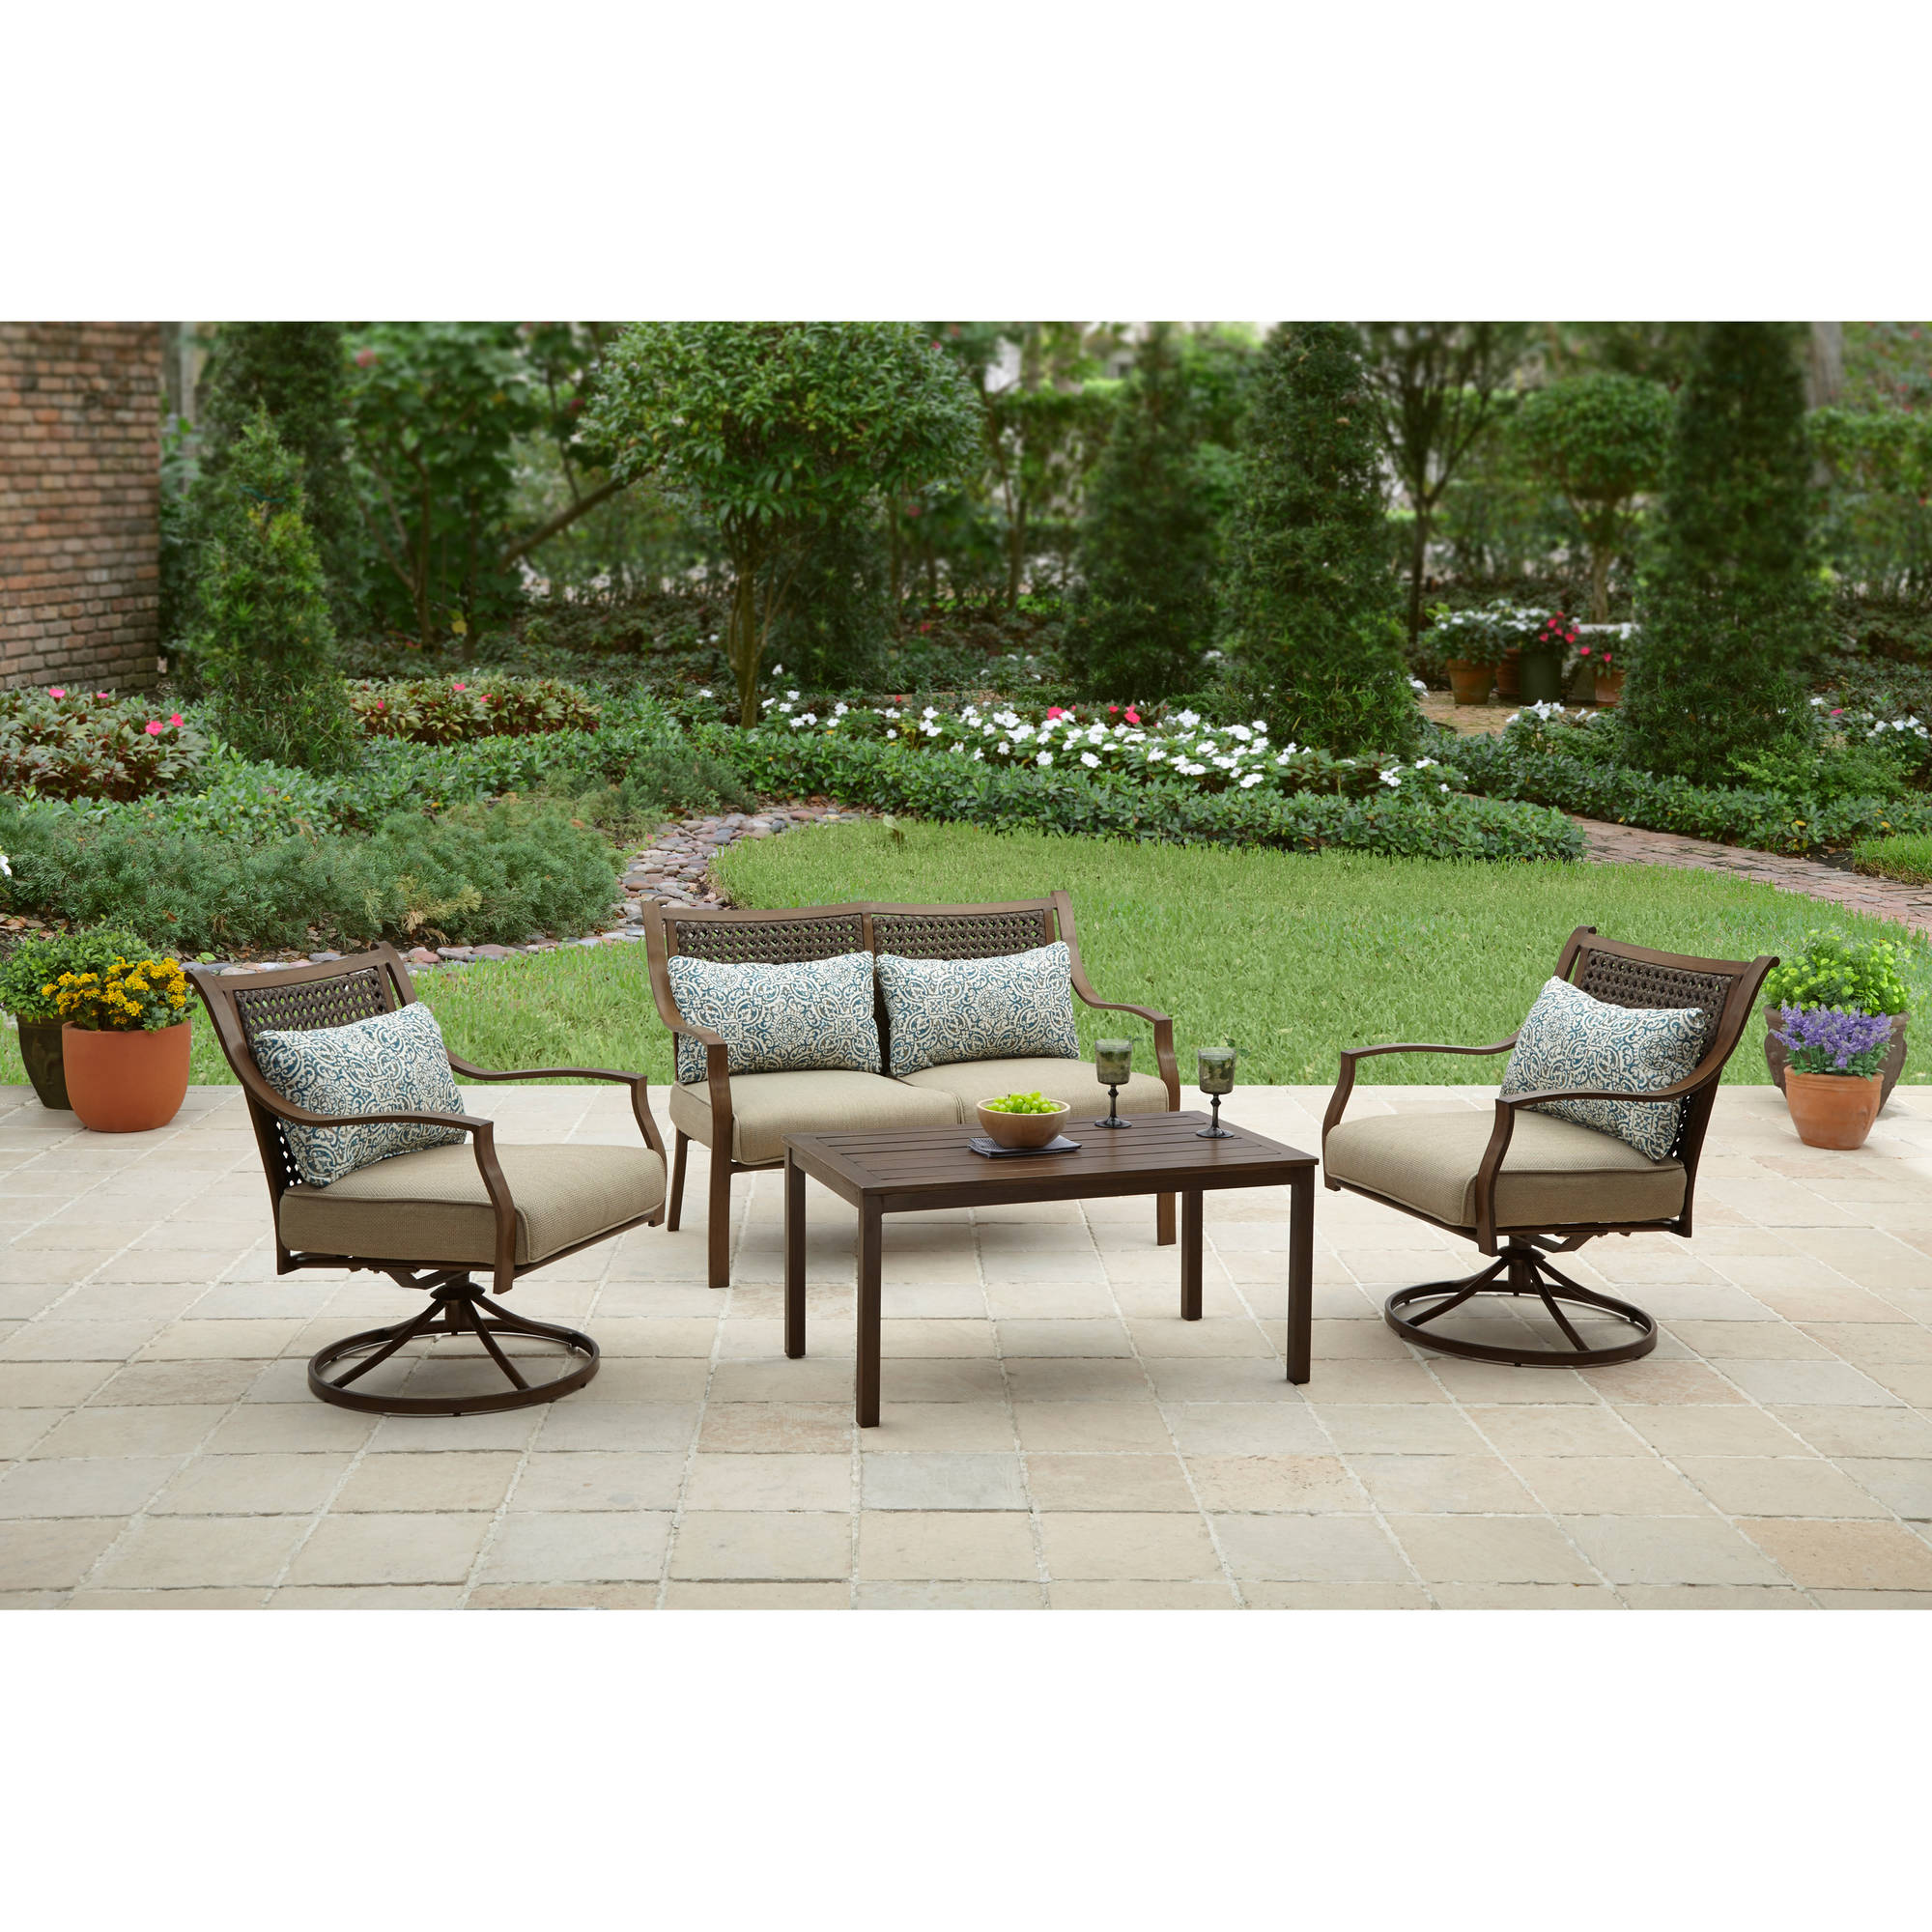 Better Homes and Gardens Lynnhaven Park 4 Piece Outdoor Conversation Set    Walmart com. Better Homes and Gardens Lynnhaven Park 4 Piece Outdoor